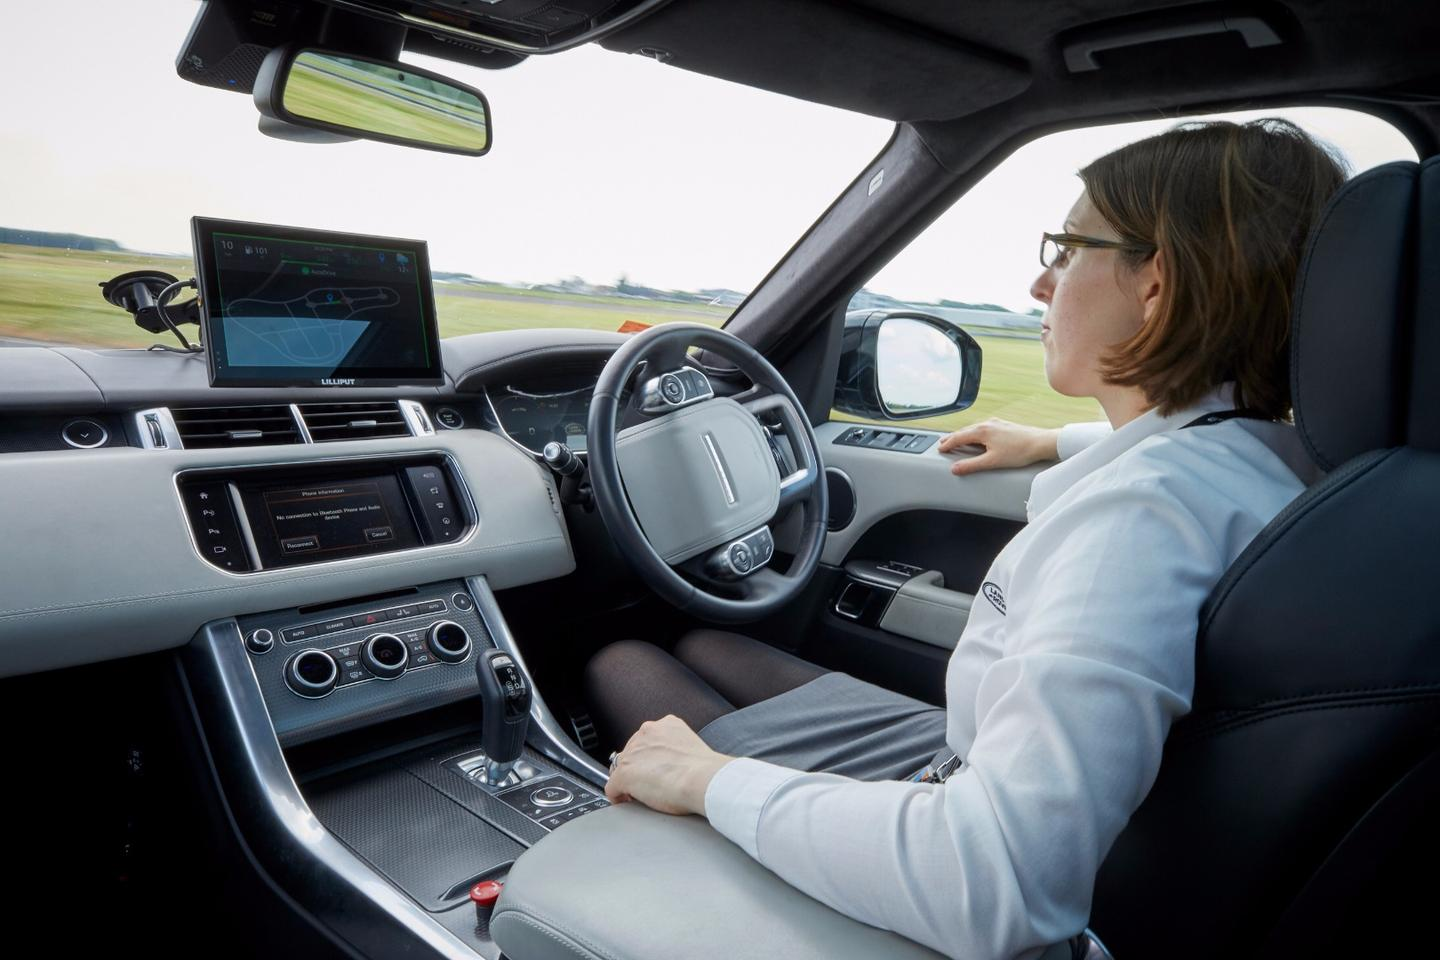 Jaguar Land Rover hopes to achieve level four autonomy within the next decade